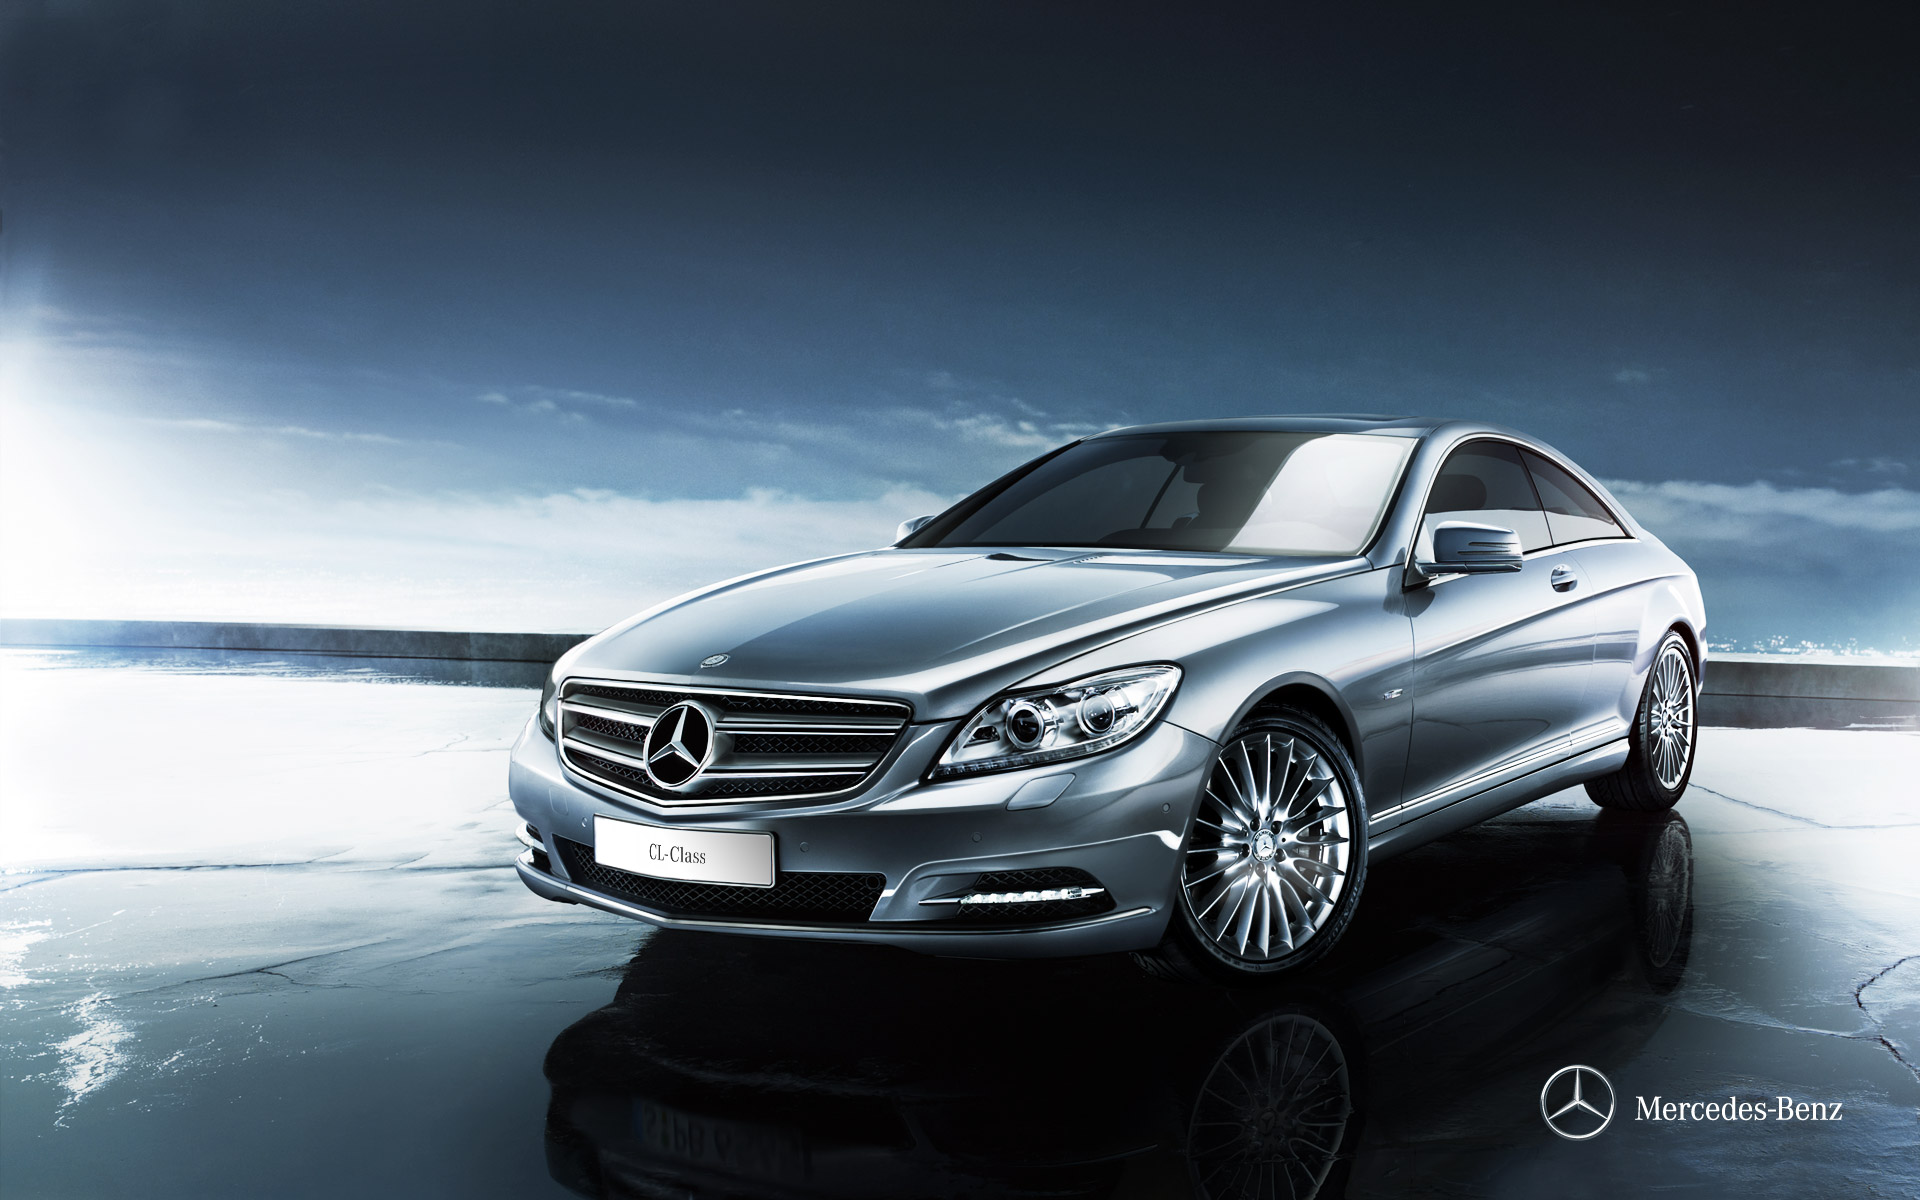 Car pictures list for mercedes benz cl class 2012 cl 65 for Mercedes benz list of cars